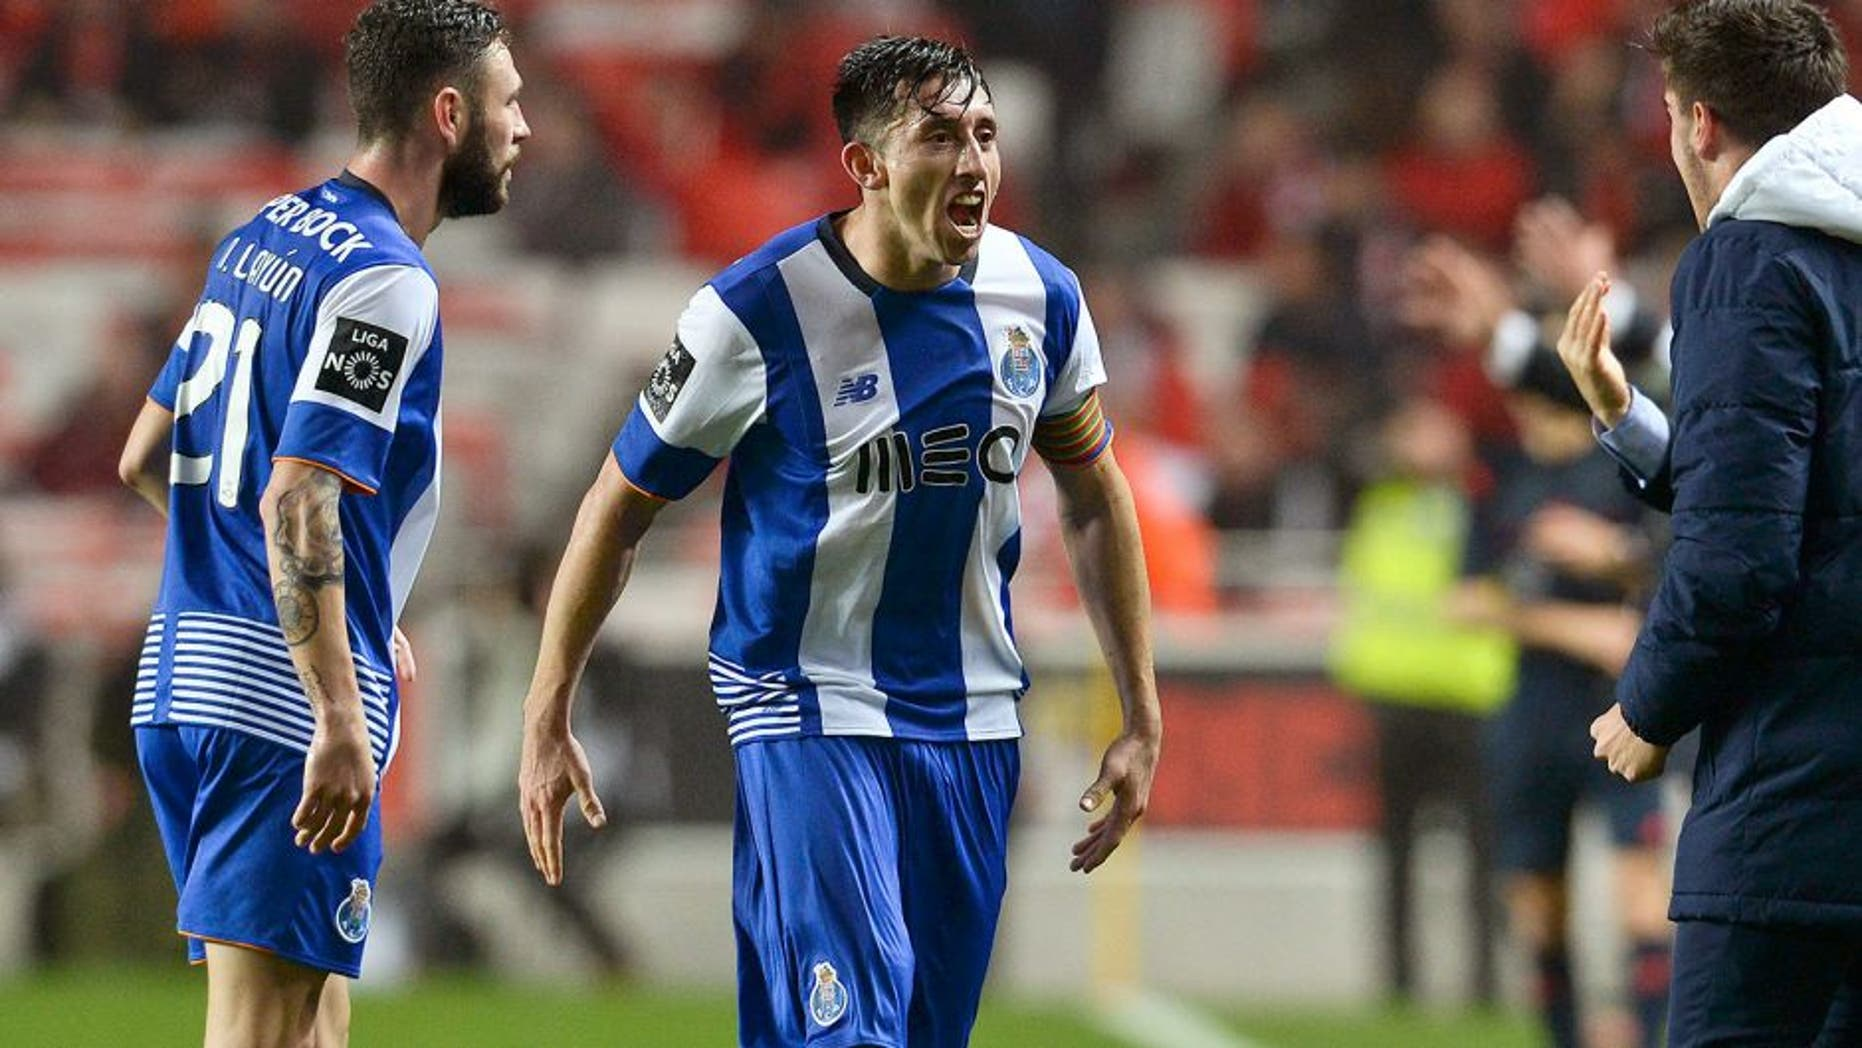 Porto's Mexican midfielder Hector Herrera (2nd L) celebrates a goal with teammate Porto's Mexican defender Miguel Layun (L) during the Portuguese league football match SL Benfica vs FC Porto at the Luz stadium in Lisbon on February 12, 2016. / AFP / PATRICIA DE MELO MOREIRA (Photo credit should read PATRICIA DE MELO MOREIRA/AFP/Getty Images)